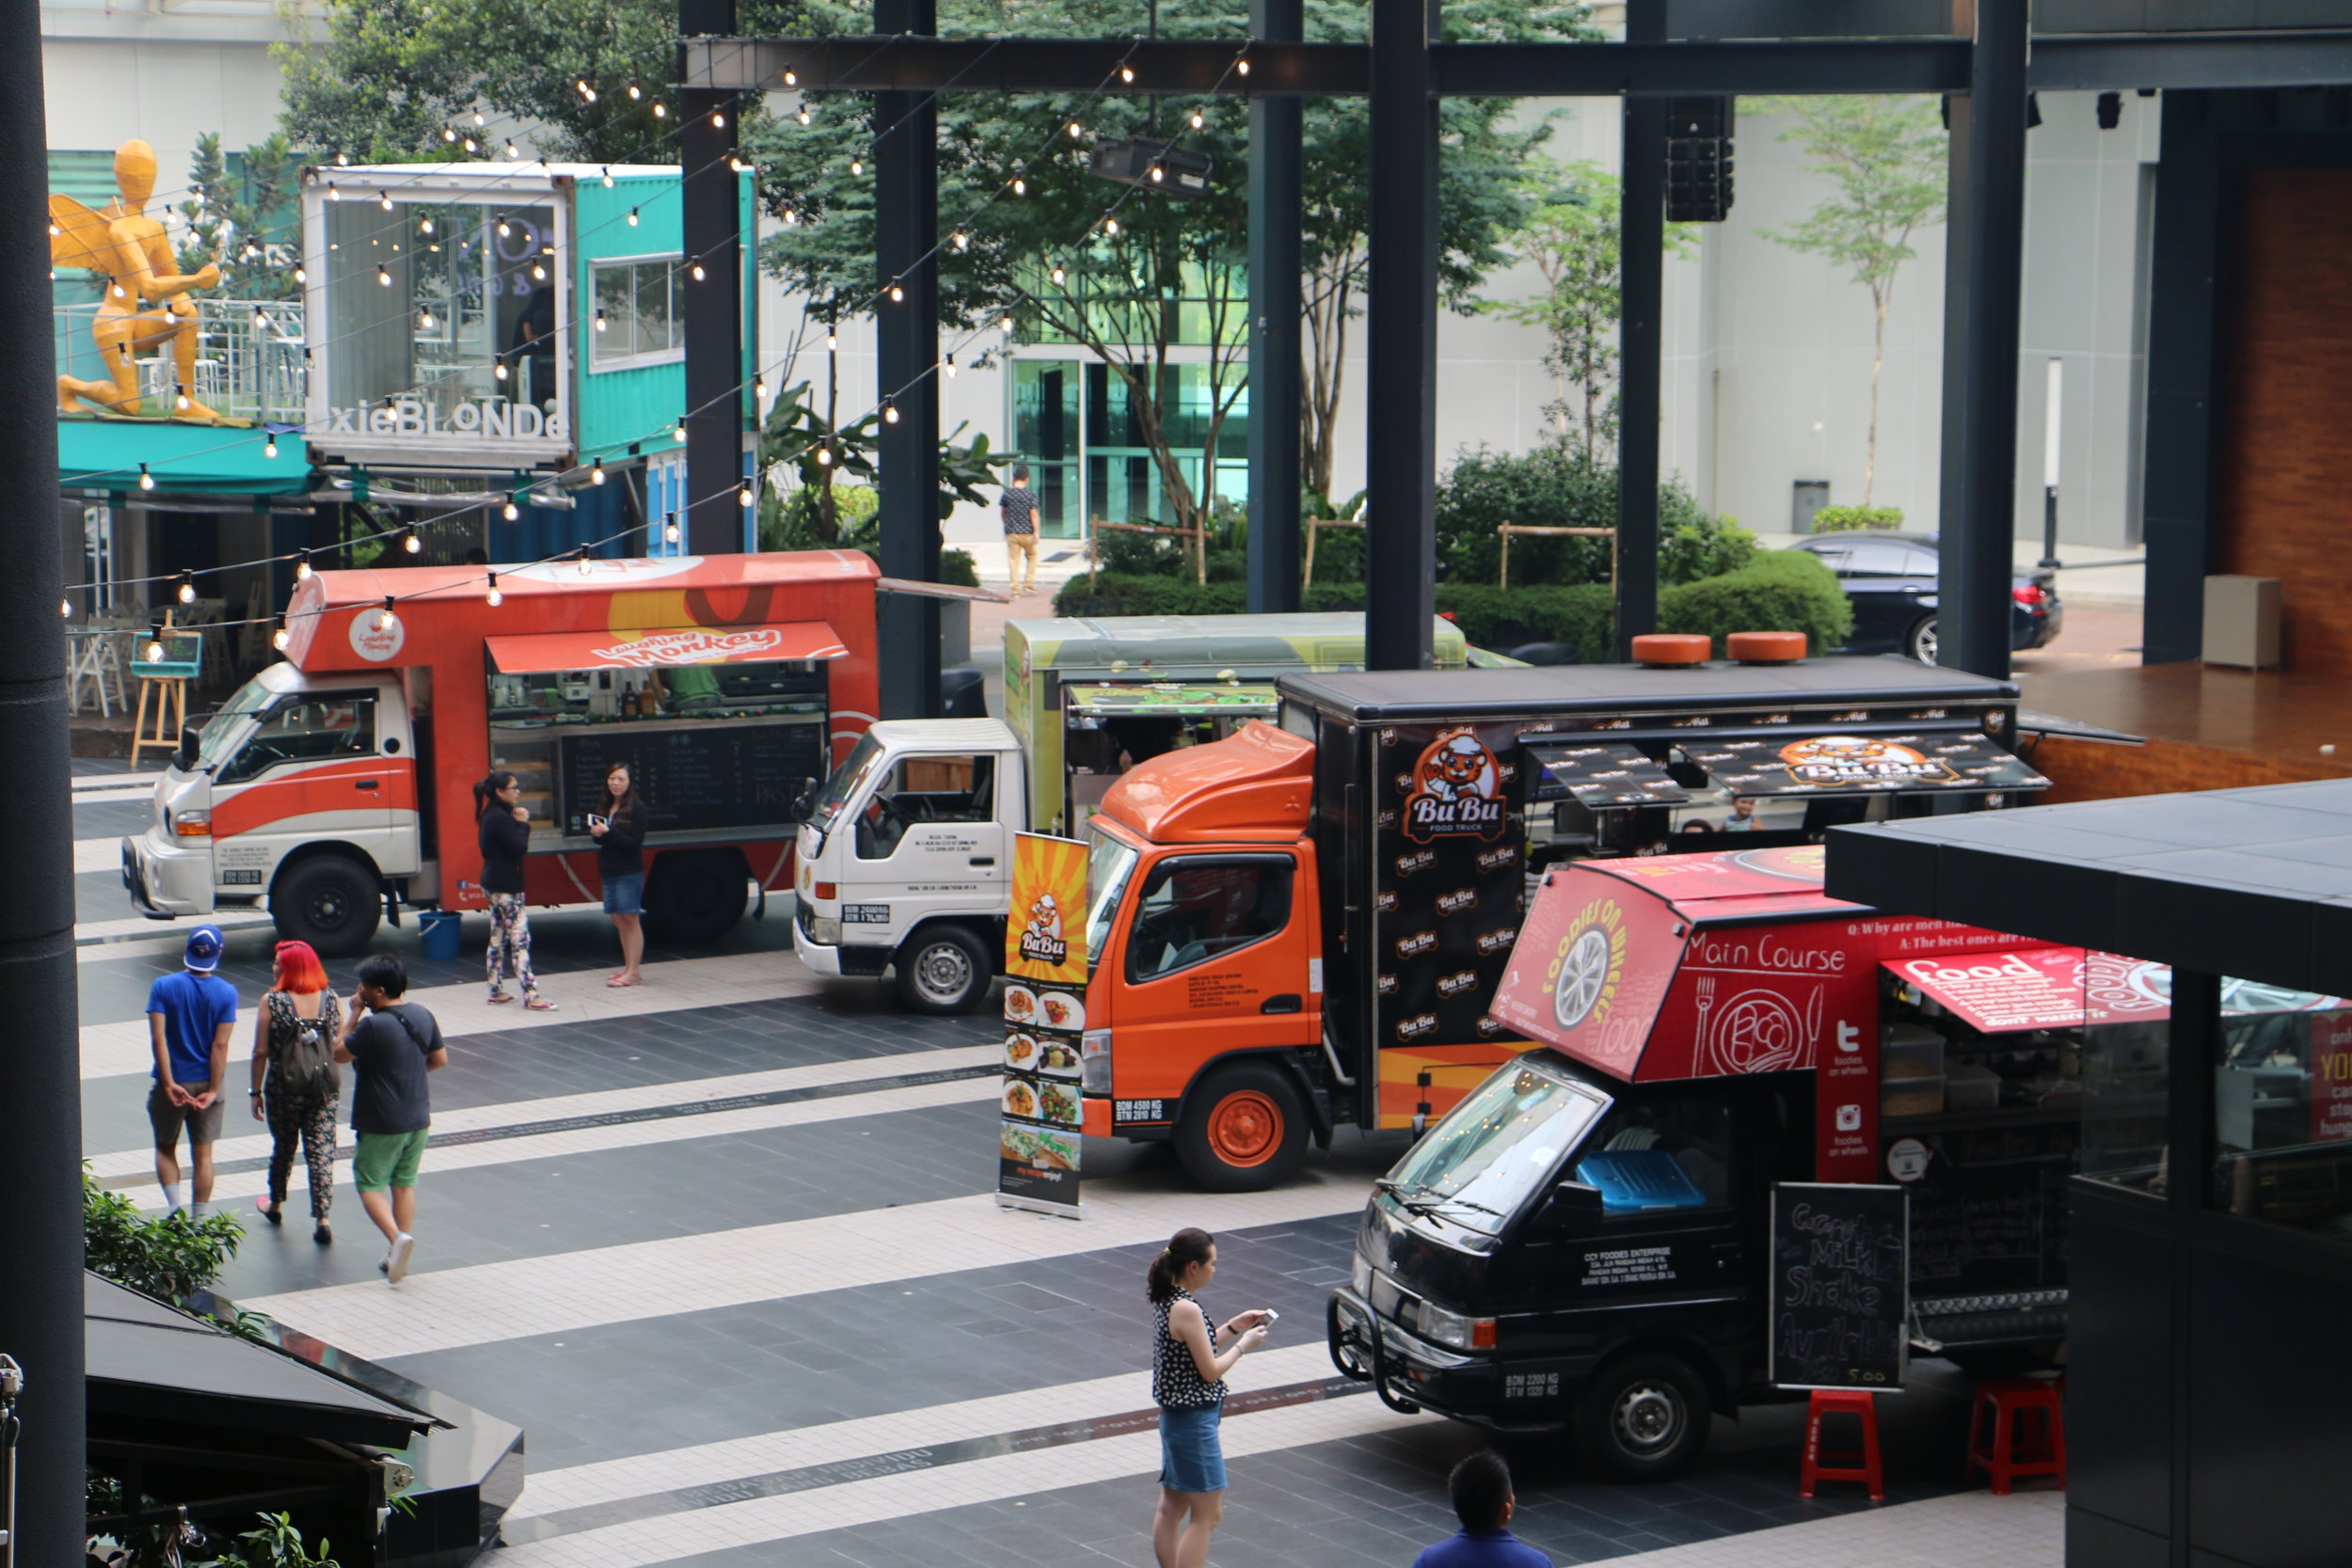 ichef-ipad-pos-system-point-of-sale-food-truck.jpg